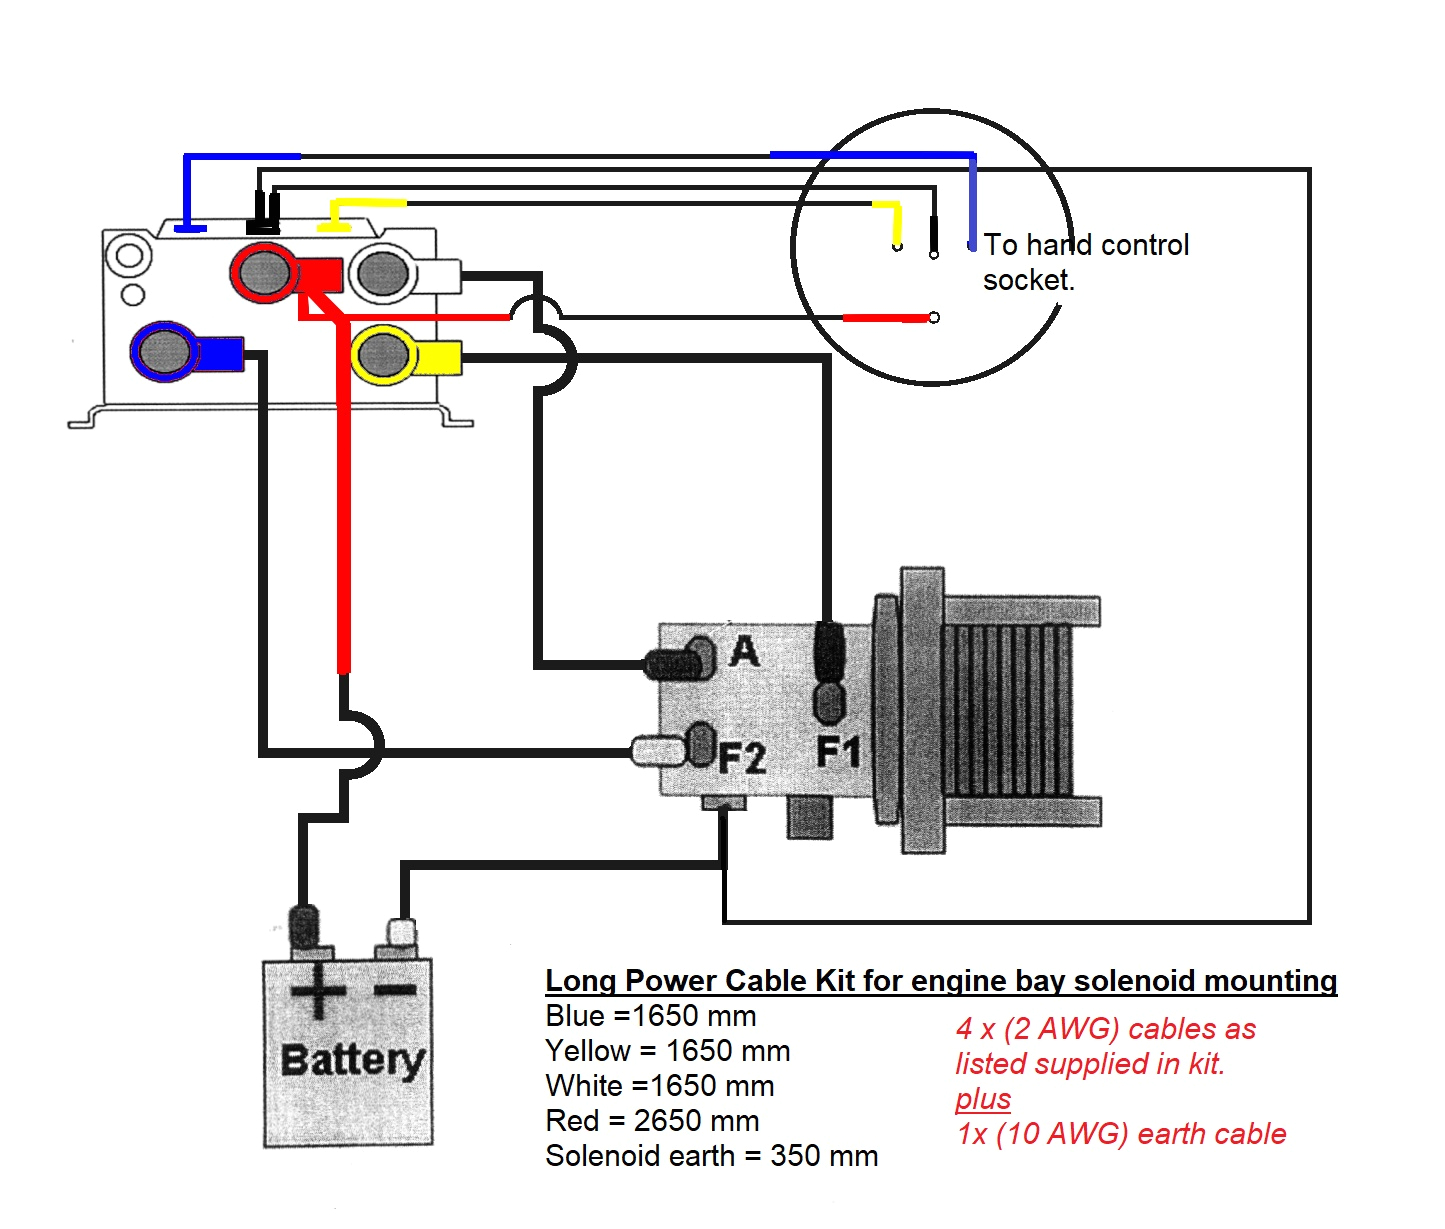 warn winch a2500 wiring diagram - wiring diagram data a2500 warn wiring diagram warn winch wiring diagram tennisabtlg-tus-erfenbach.de